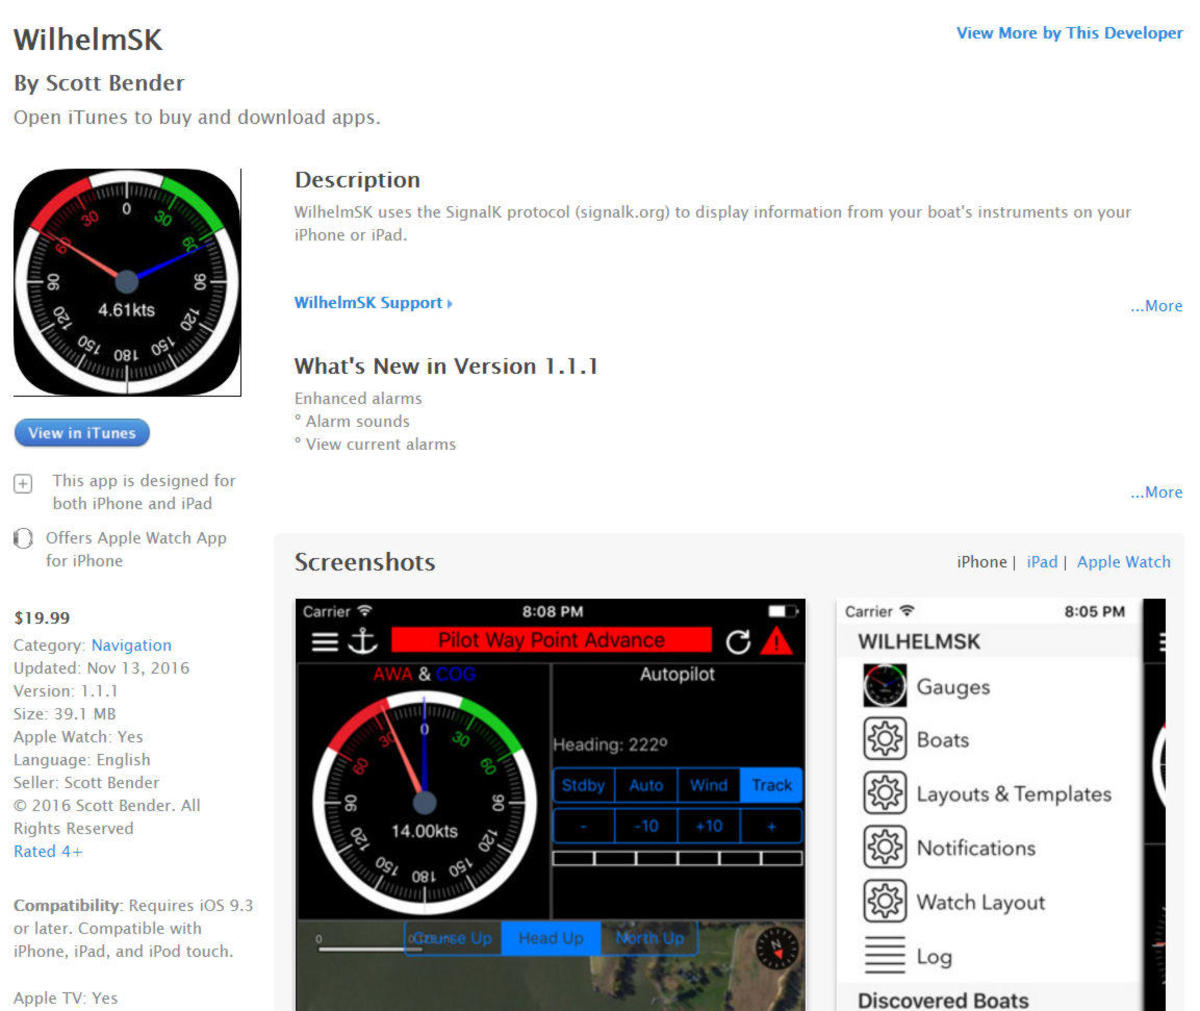 wilhelmsk_at_apple_itunes_preview_apanbo